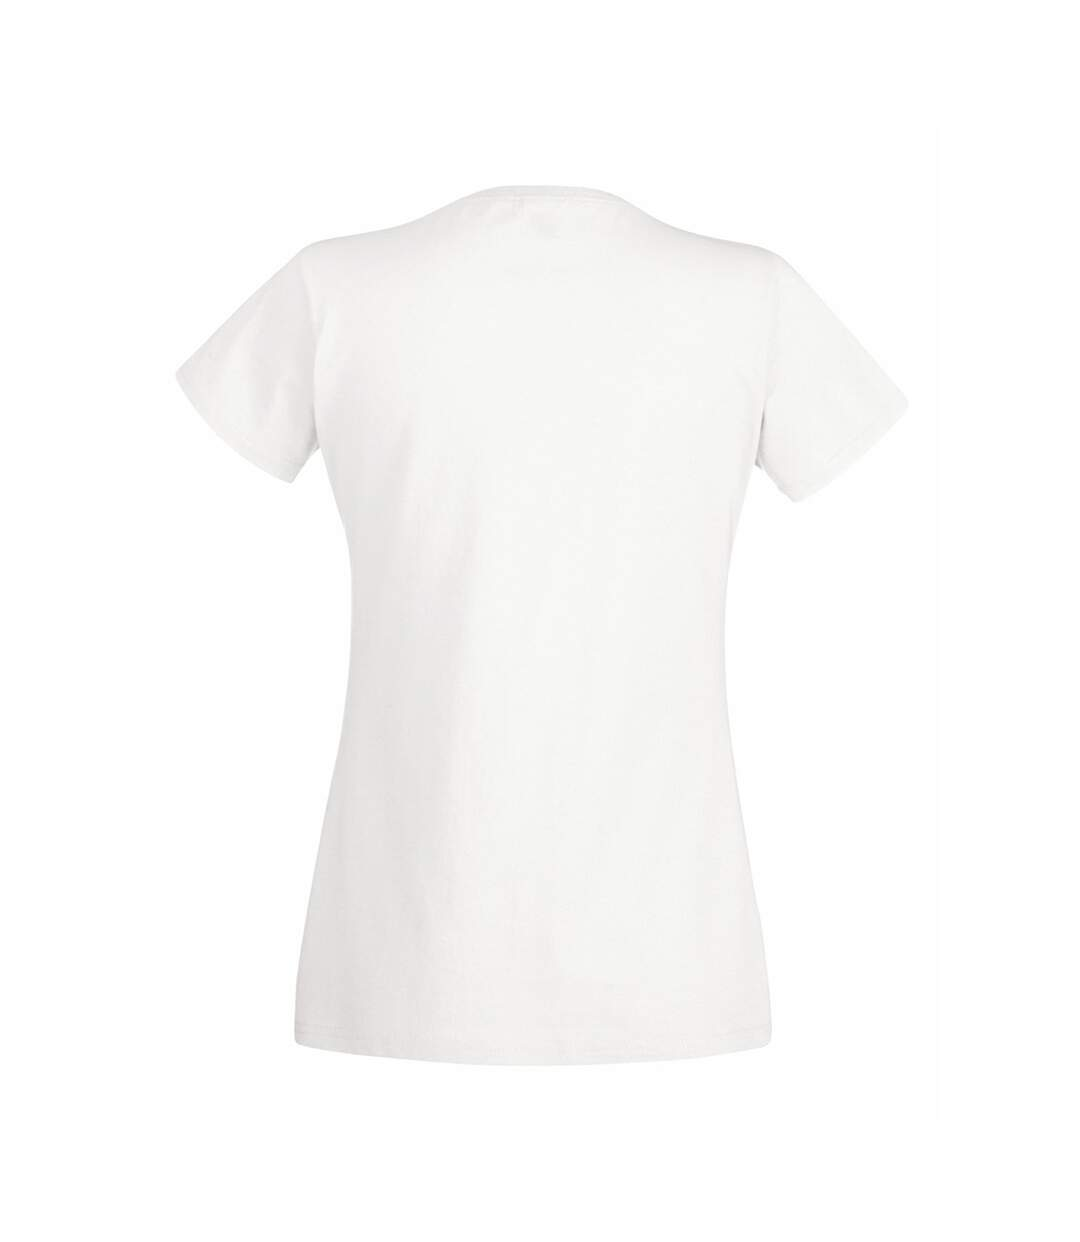 Fruit Of The Loom - T-Shirt Manches Courtes - Femme (Blanc) - UTBC1354